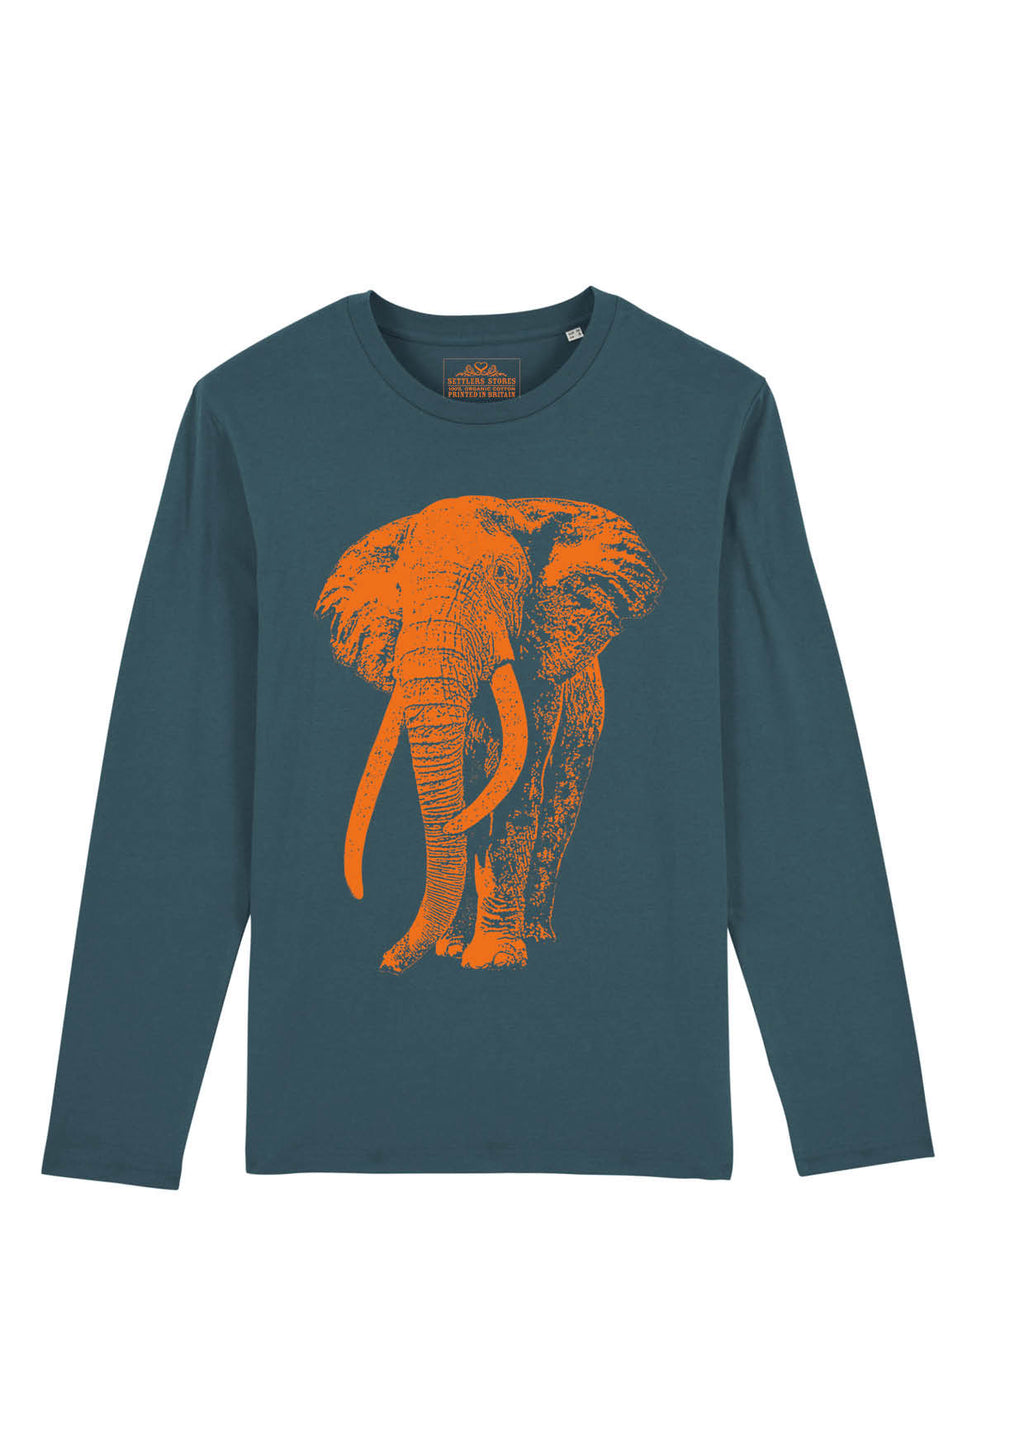 Petrol Blue Long Sleeved T-shirt with Neon Orange Tusker Elephant 100% organic cotton